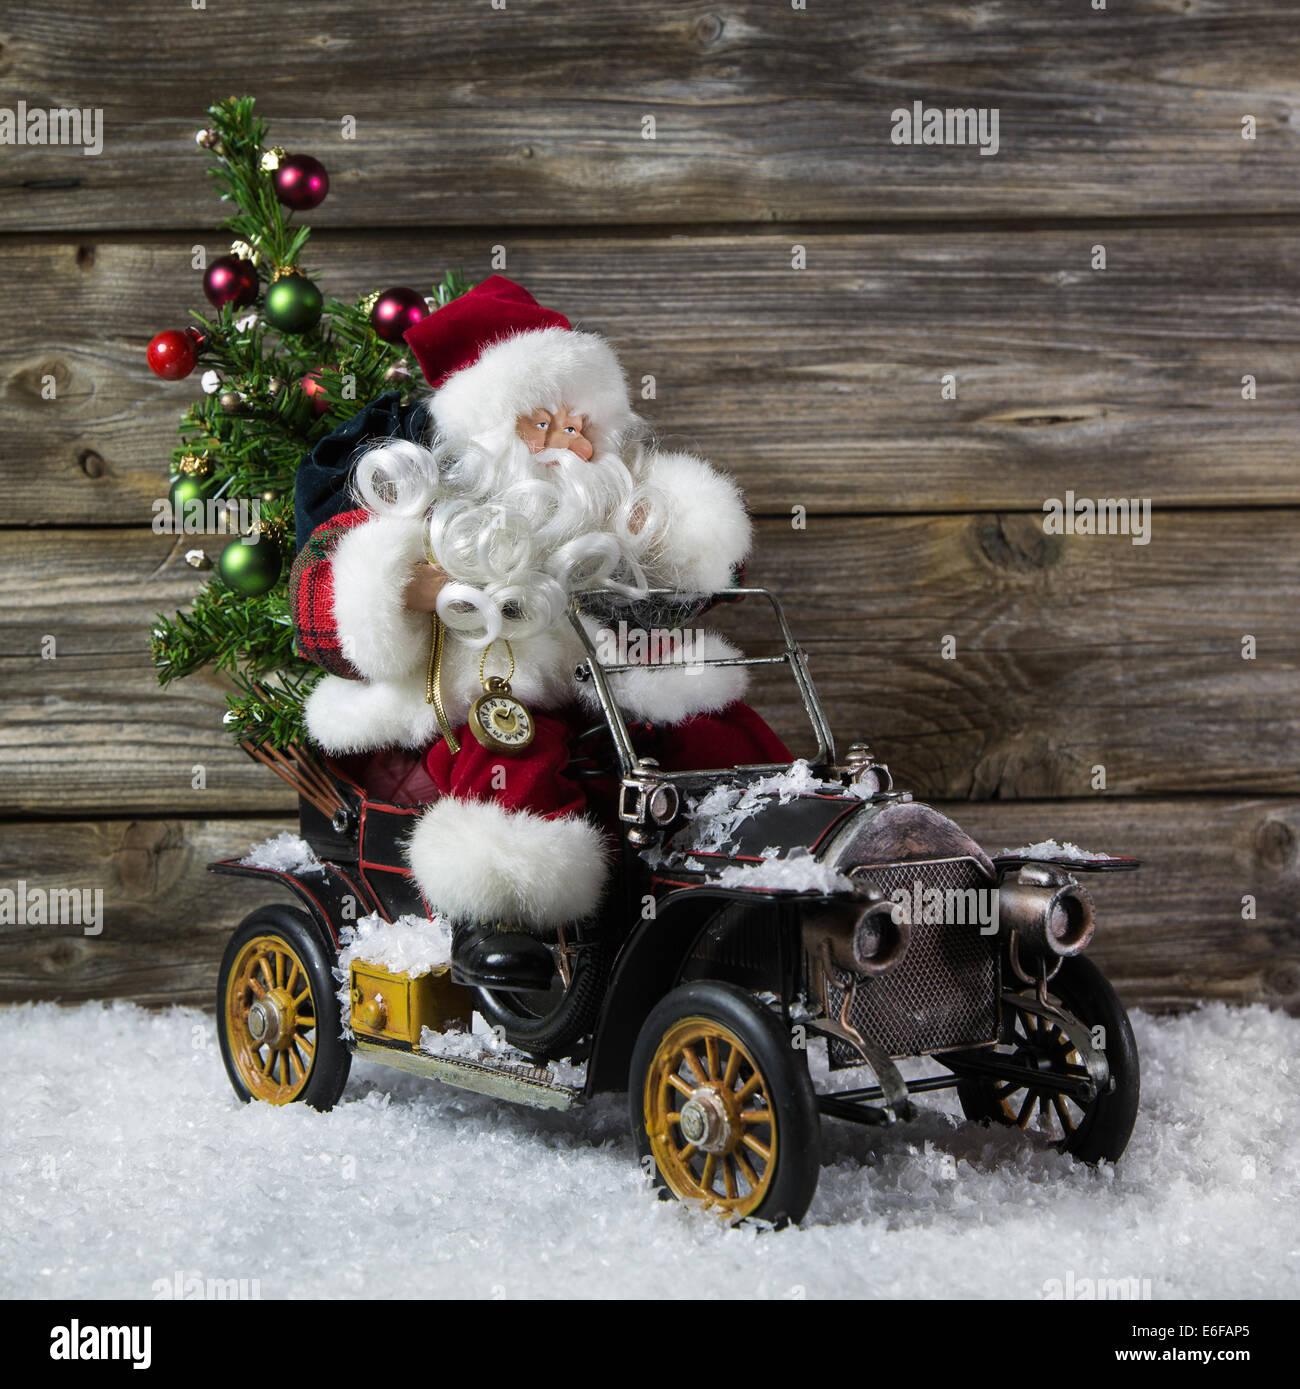 Santa claus in rush with his car: christmas shopping stress. Decoration with old vintage tin toys on wooden background. - Stock Image